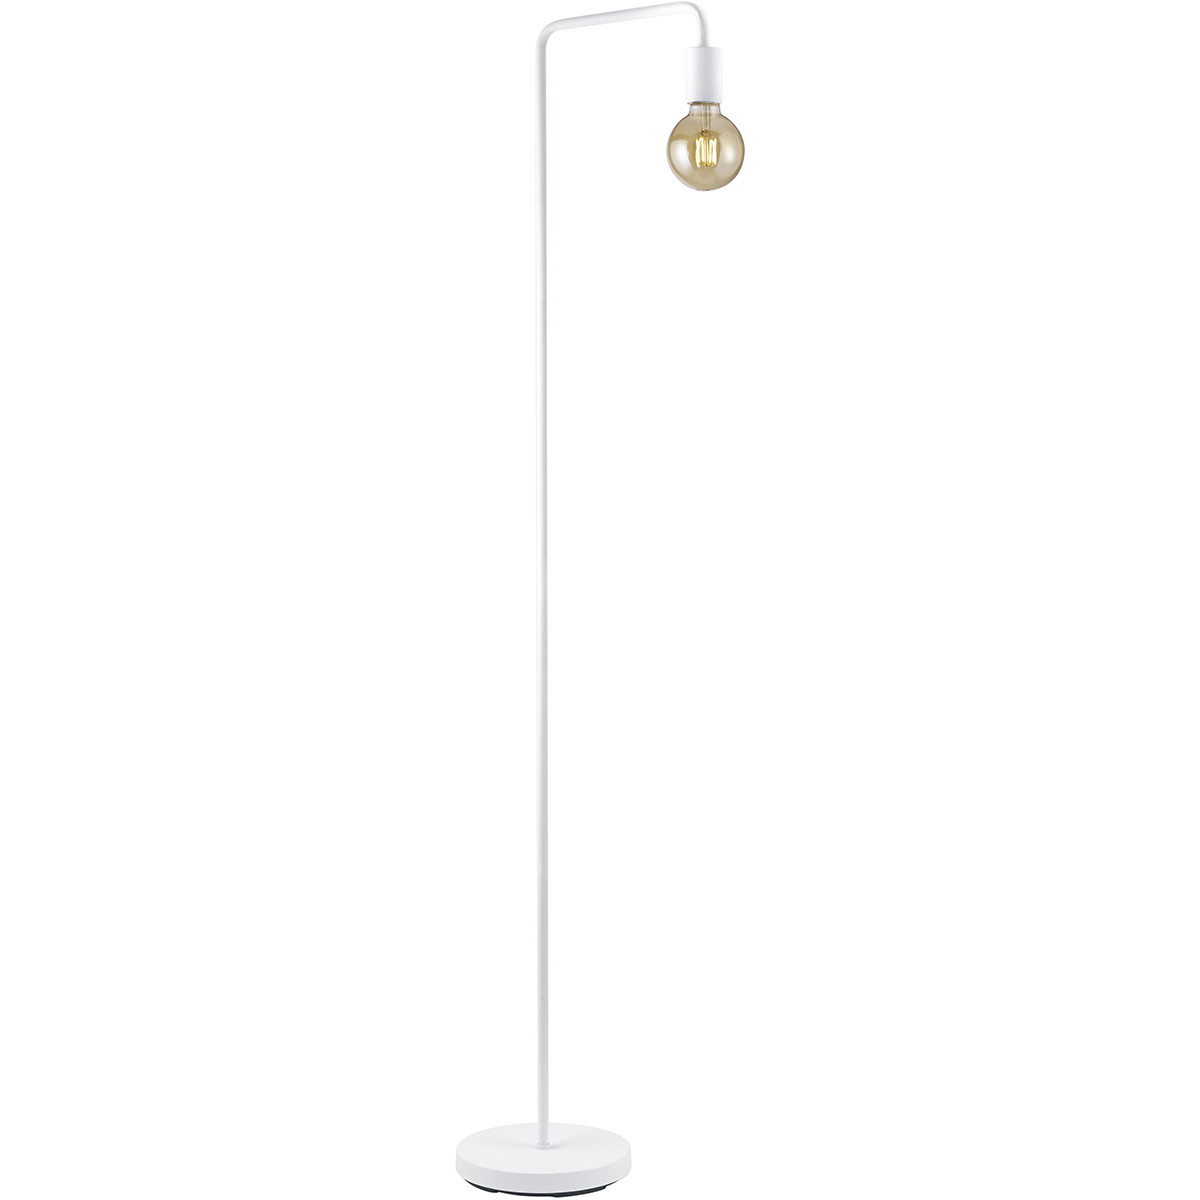 LED Vloerlamp - Trion Dolla - E27 Fitting - 1-lichts - Rond - Mat Wit - Aluminium